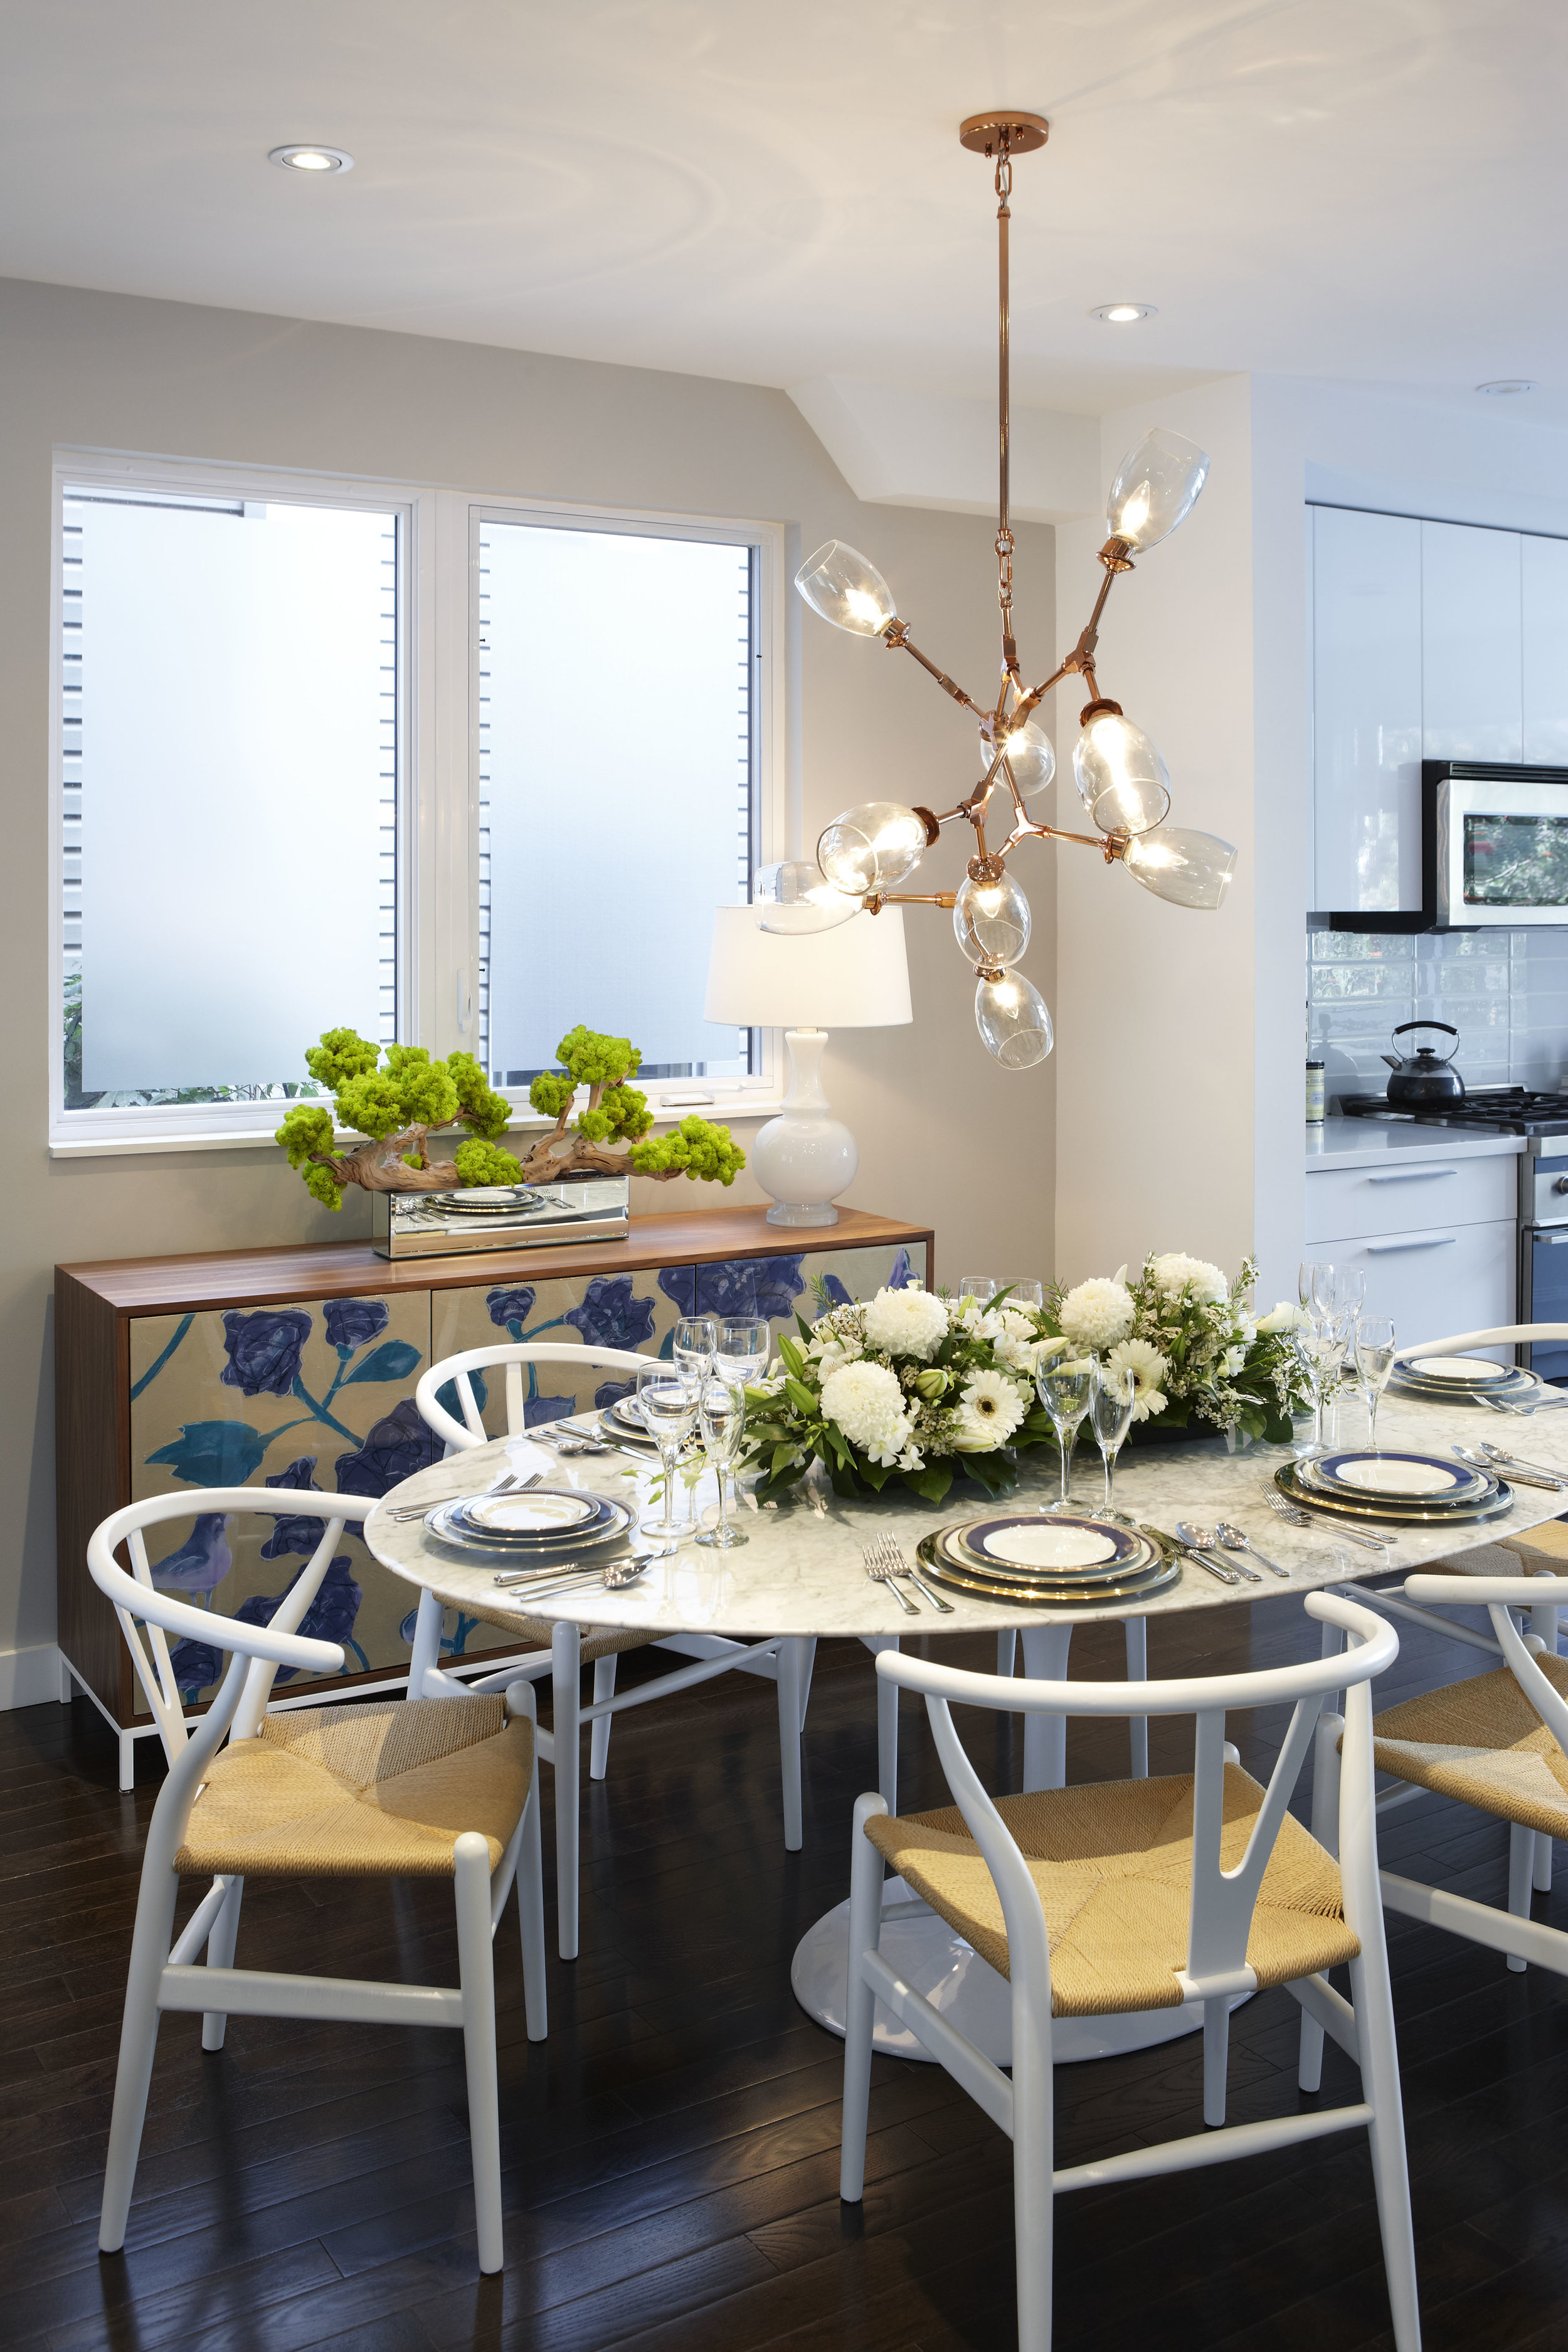 white-kitchen-table-with-white-chairs